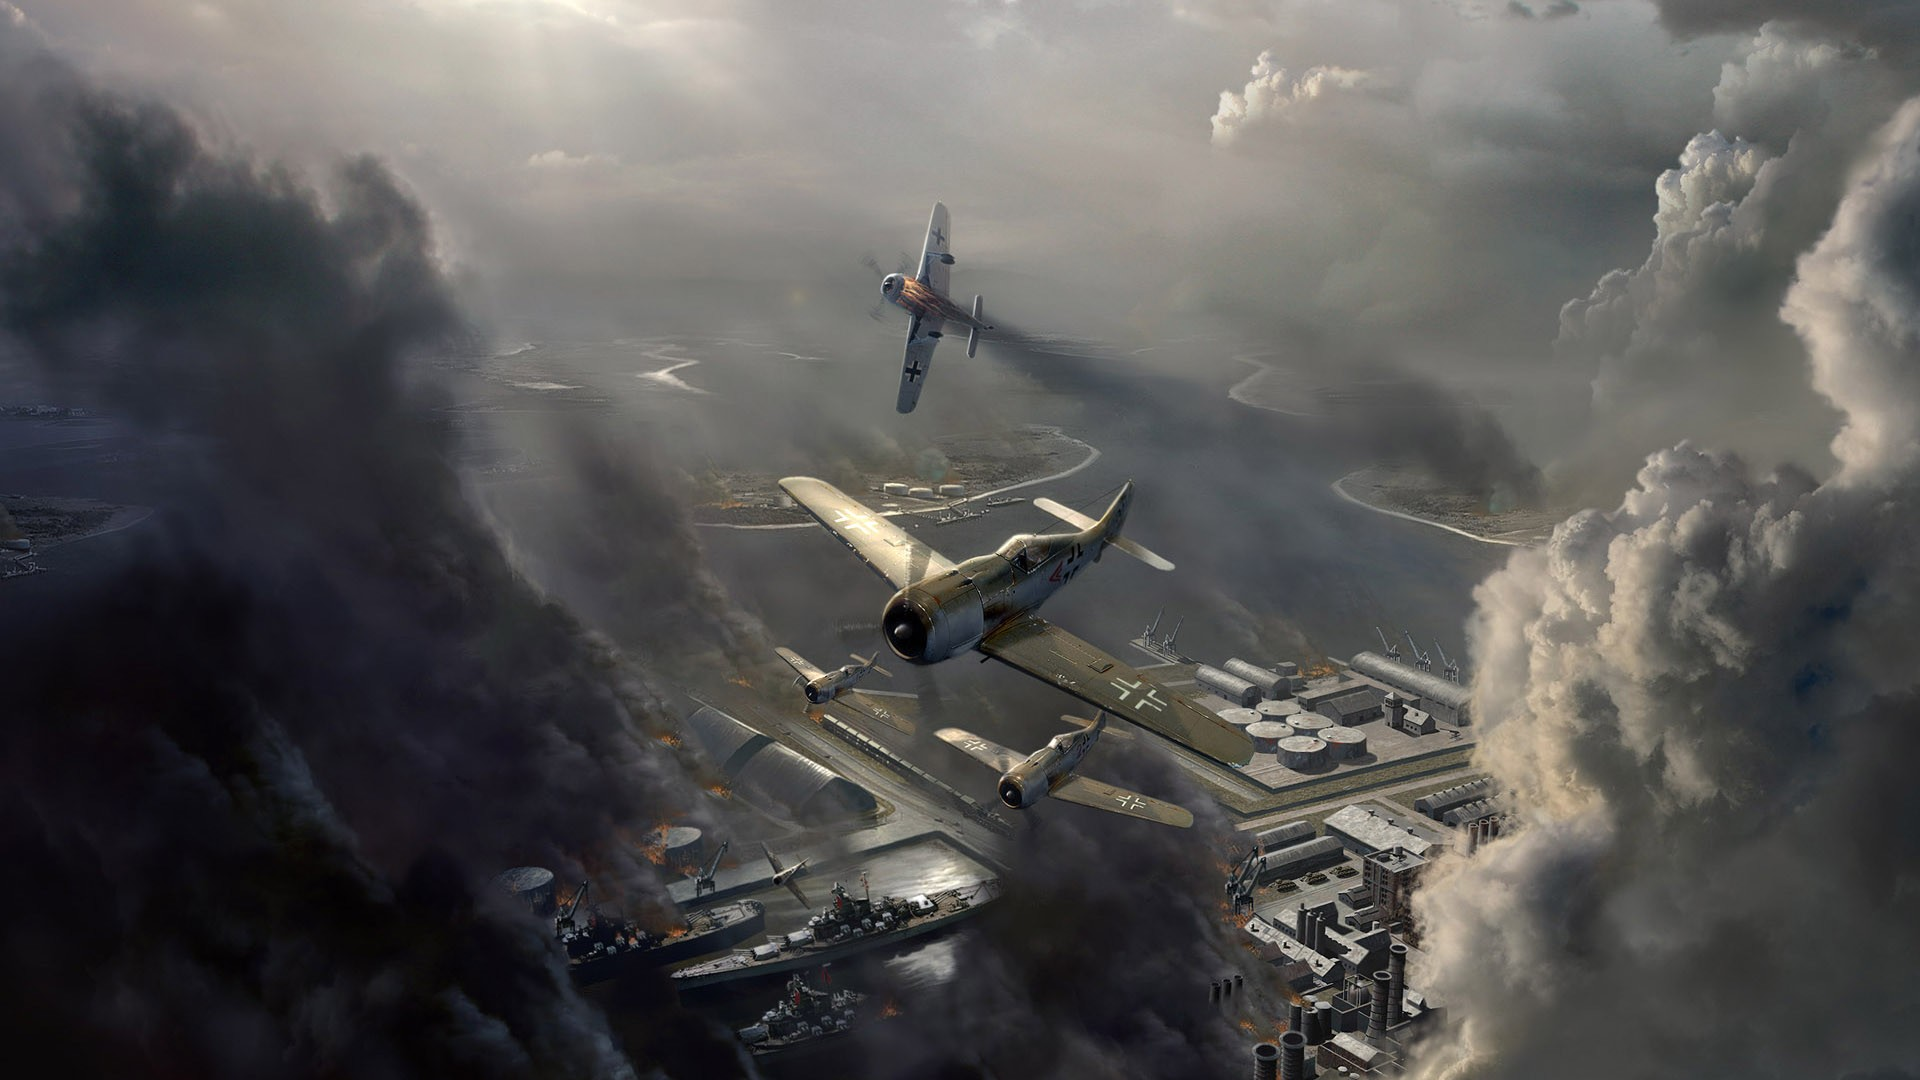 aircraft-planes-hd-fictional-focke-wulf-fw-attack-on-a-harbor-1920×1080-wallpaper-wp3602305